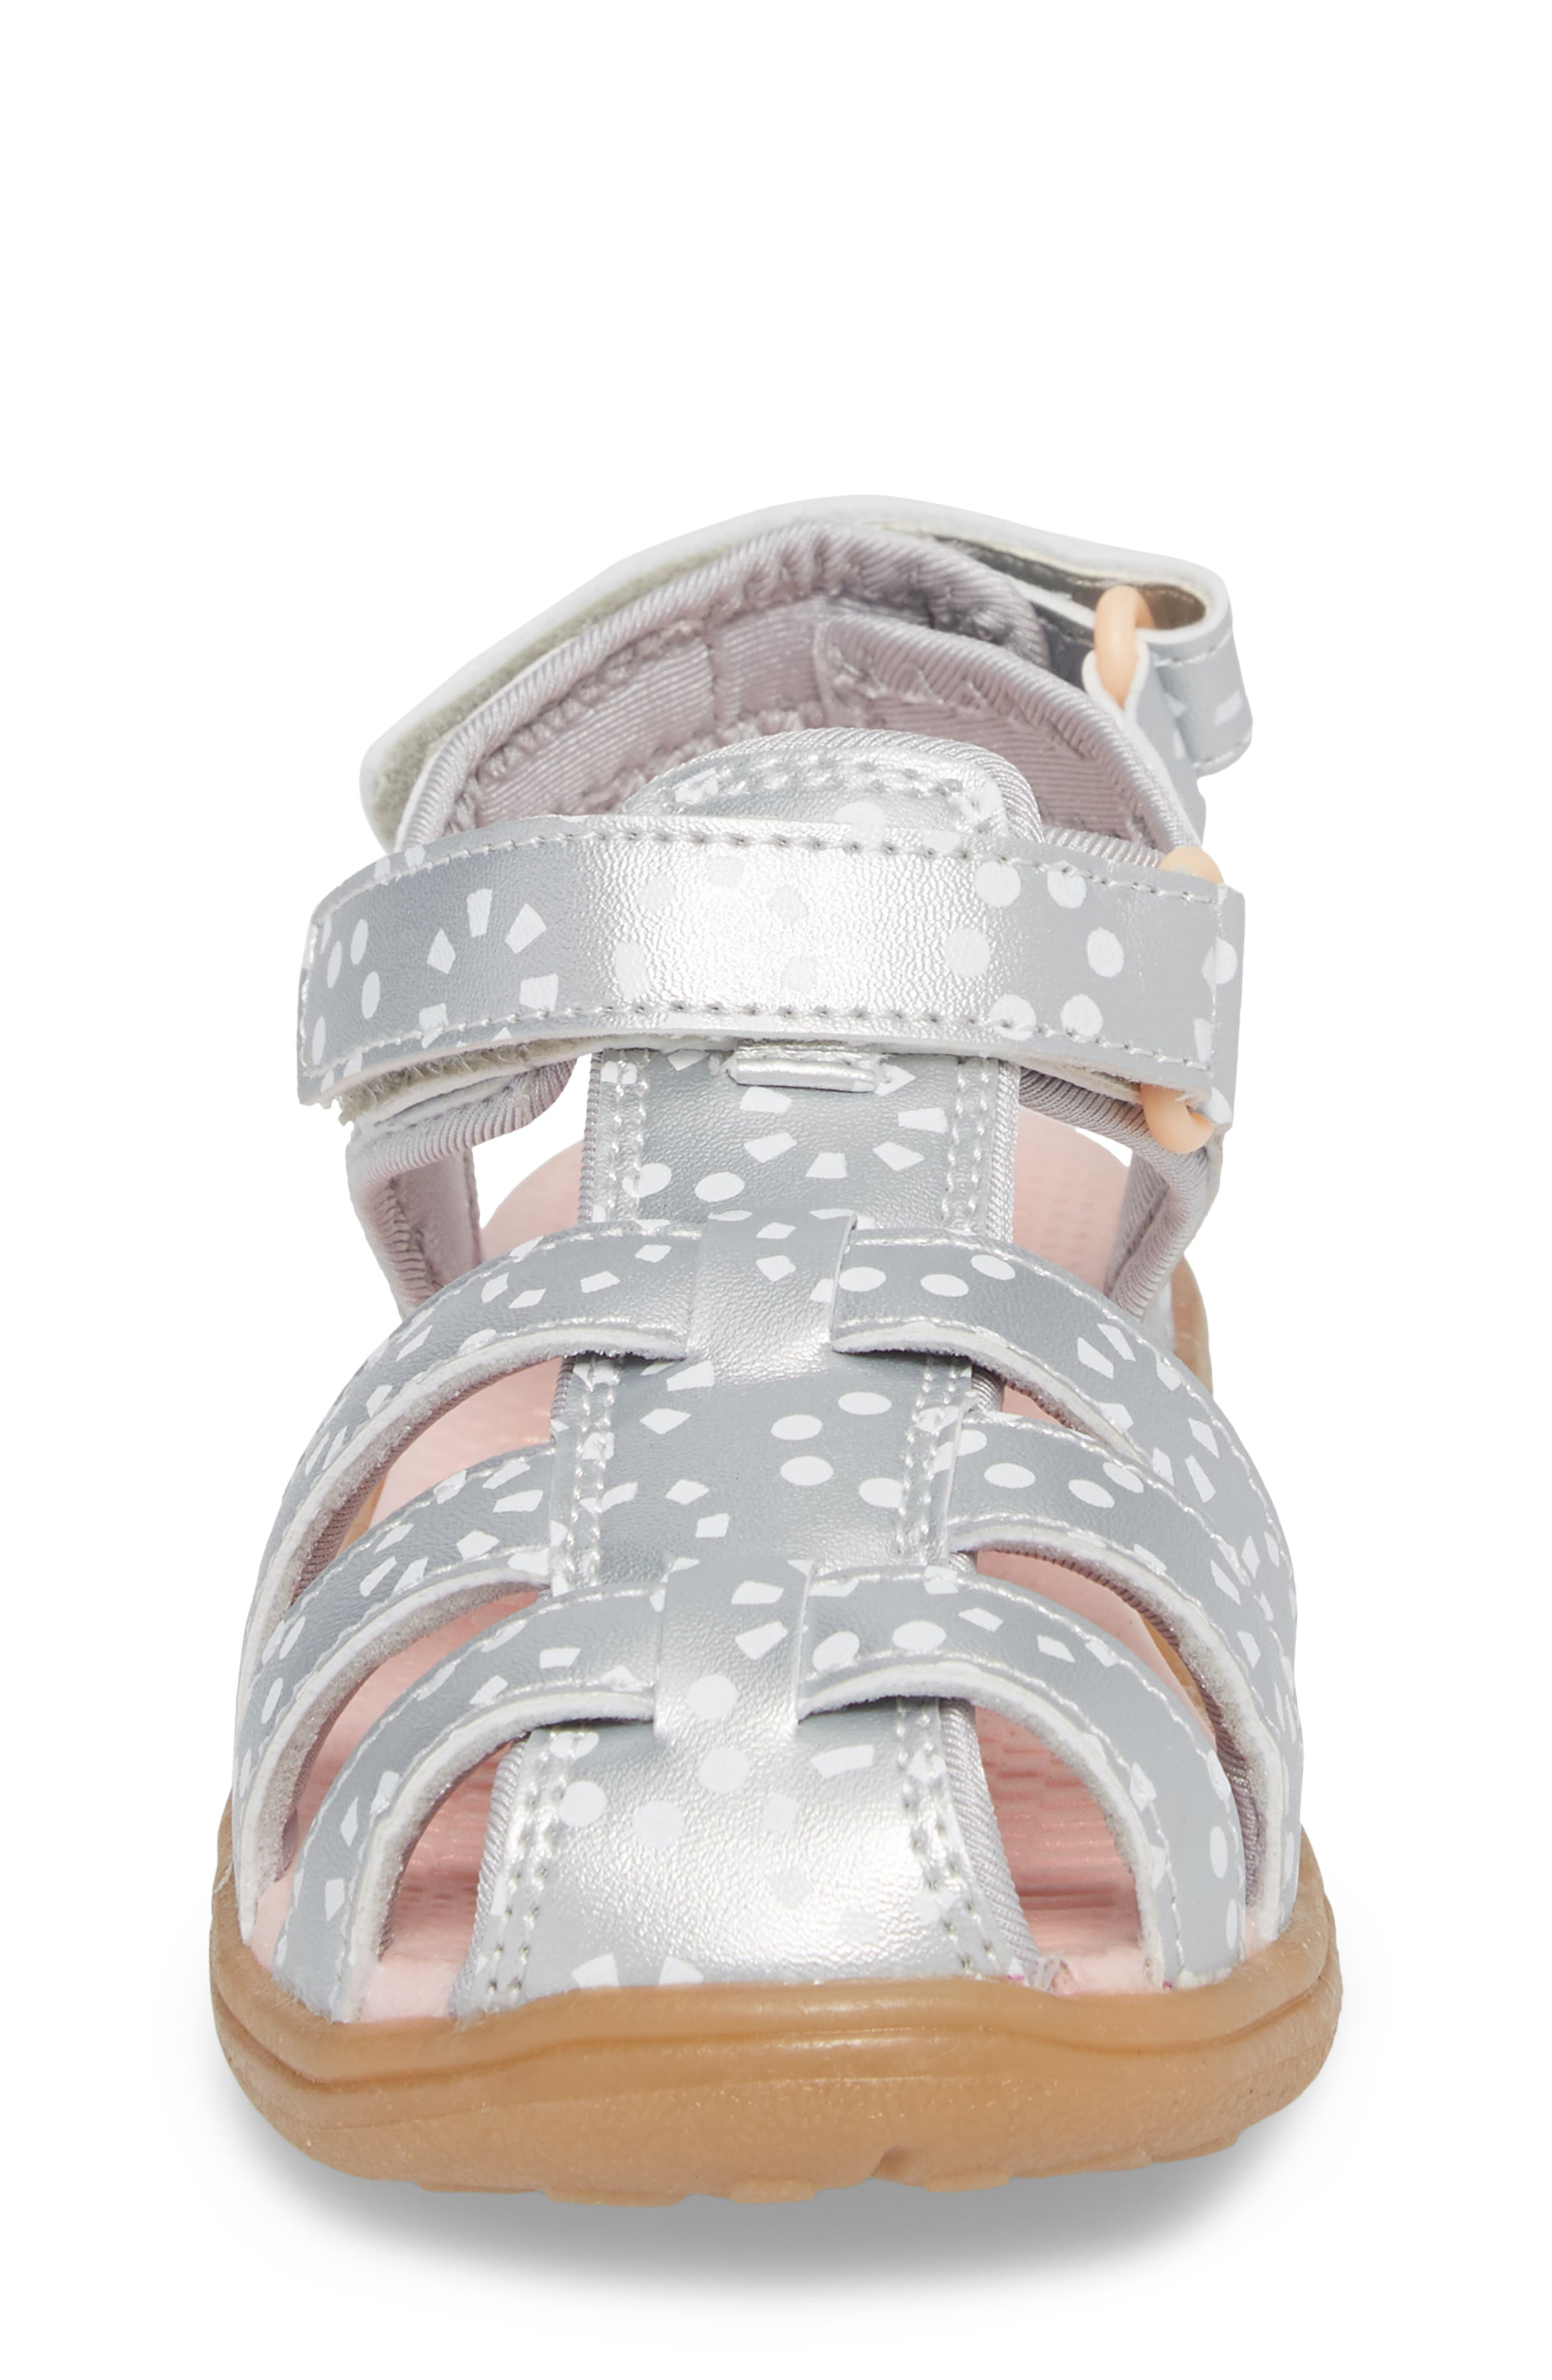 Paley Water Friendly Fisherman Sandal,                             Alternate thumbnail 5, color,                             Silver/ White